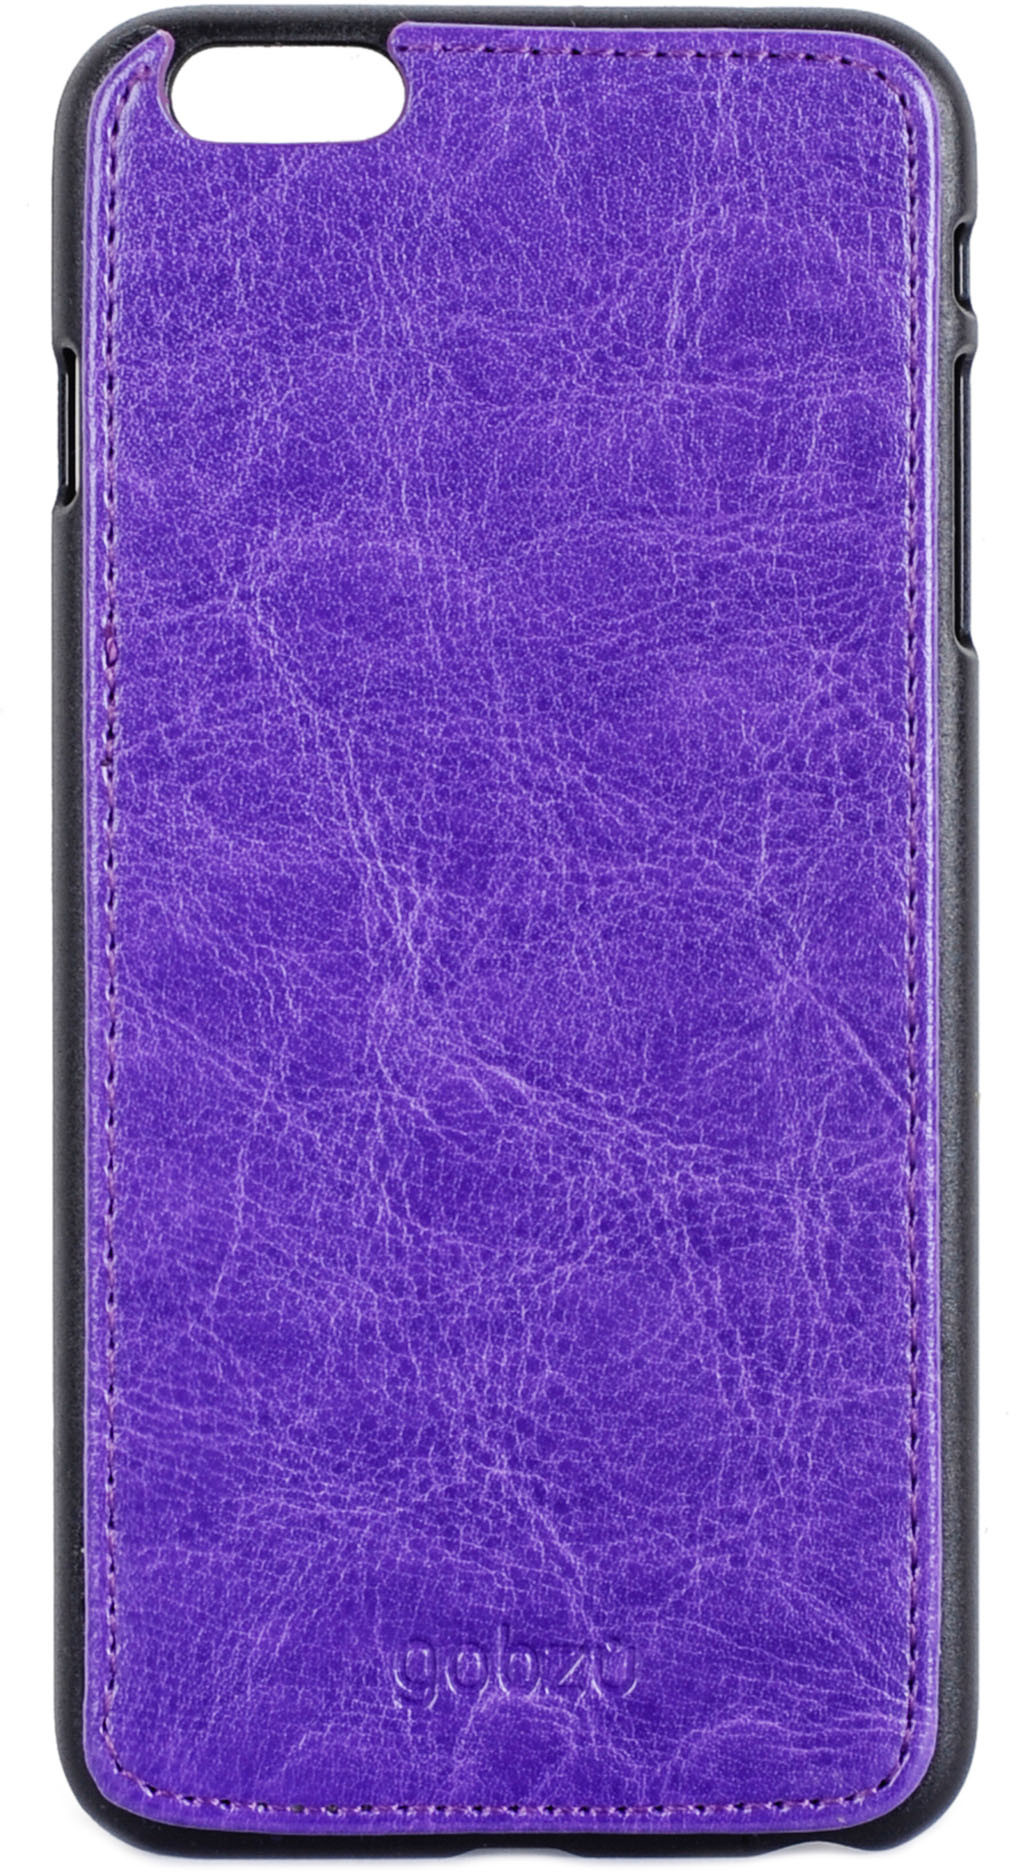 Gobzu Back Cover for iPhone 6 Plus